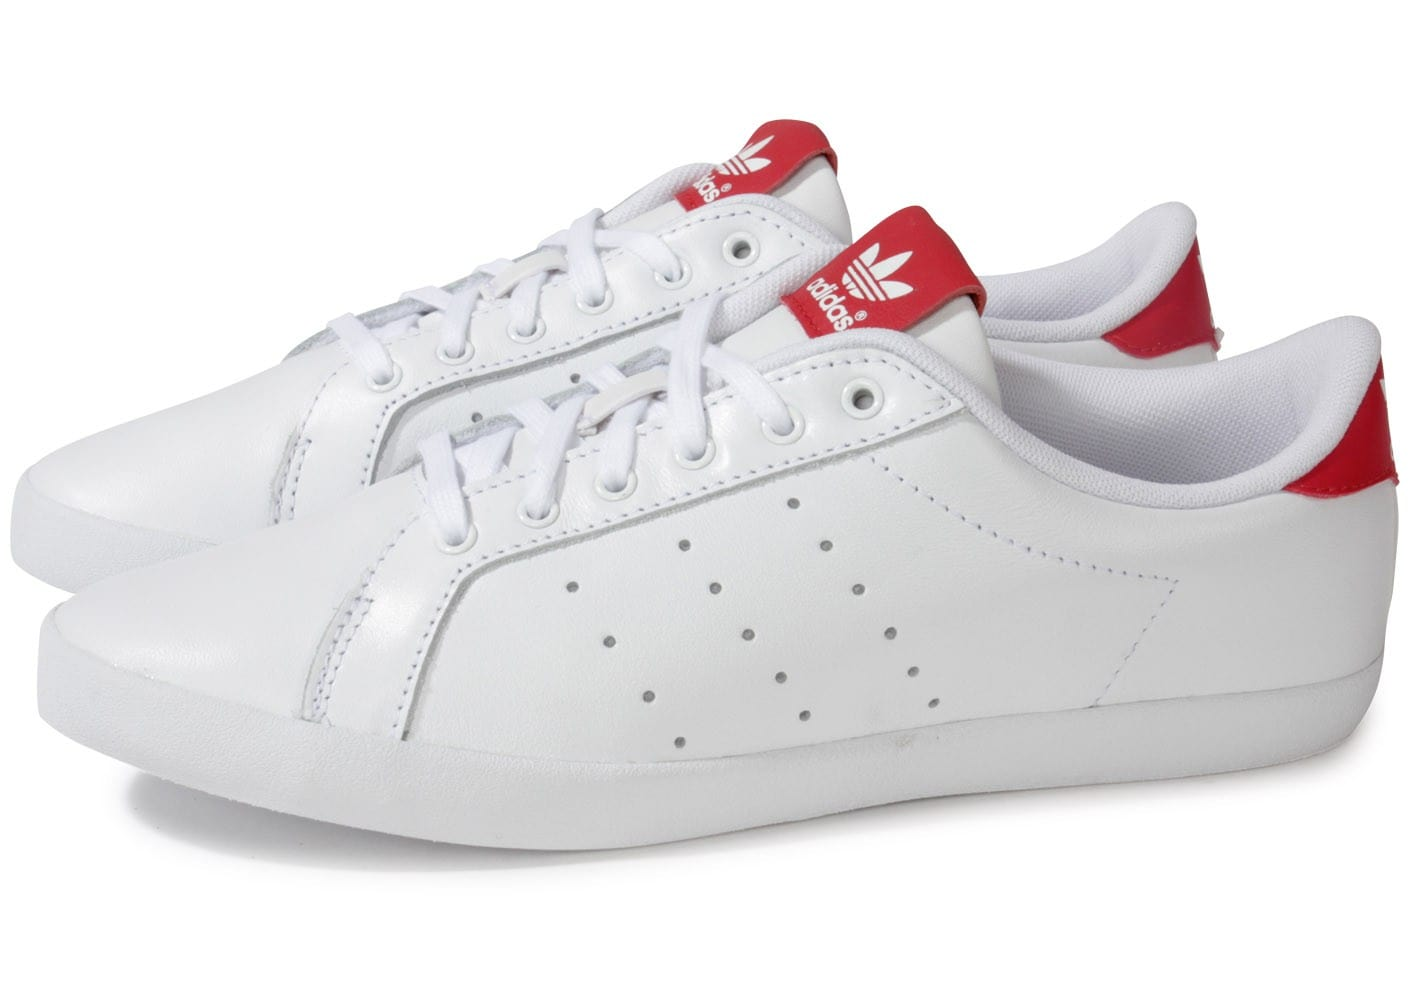 adidas miss stan blanche rouge chaussures adidas chausport. Black Bedroom Furniture Sets. Home Design Ideas